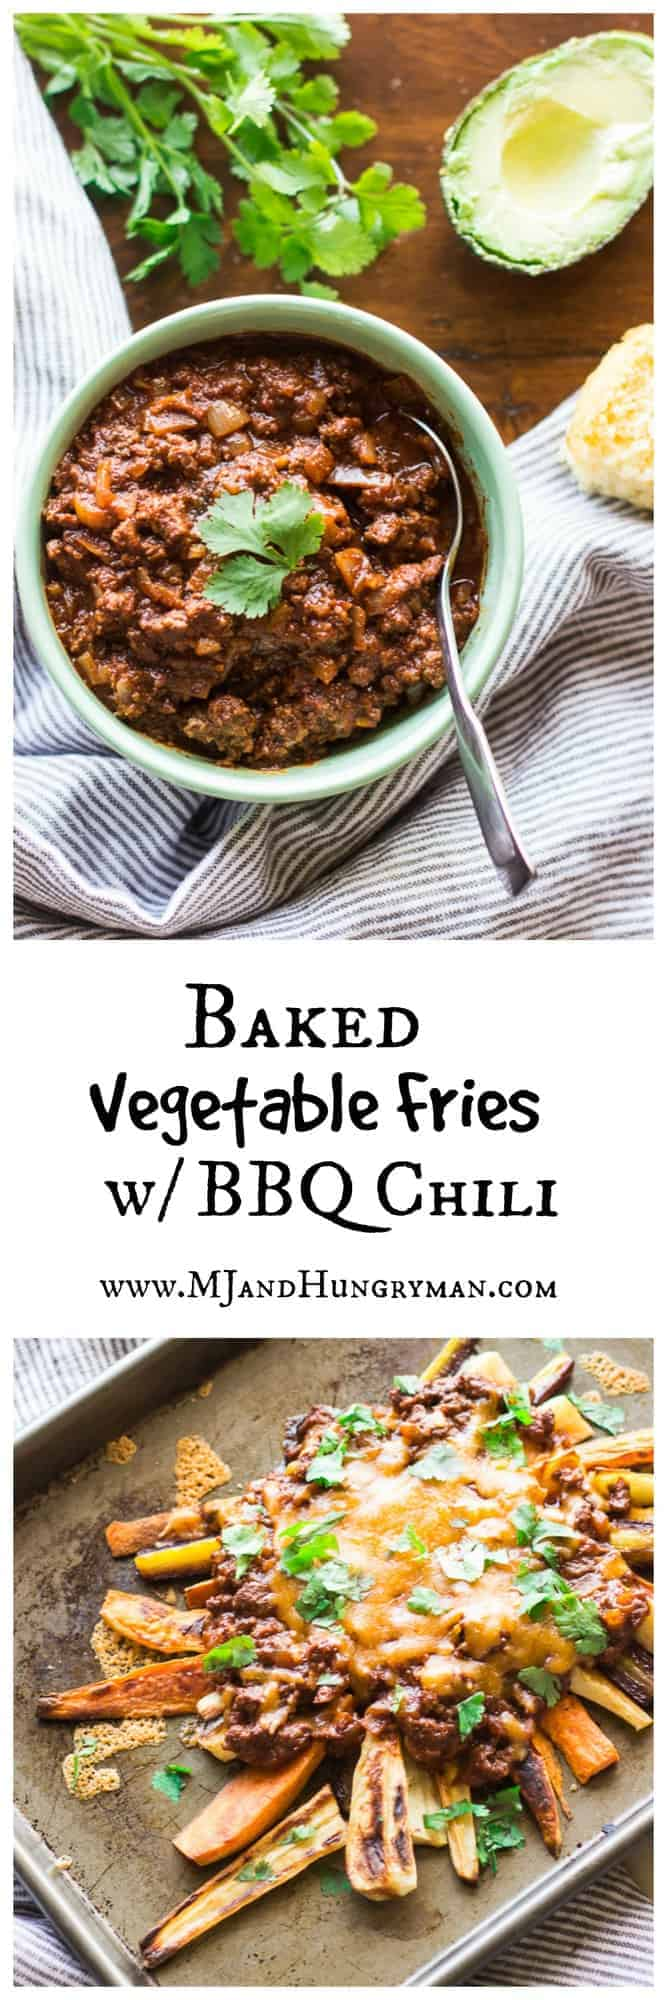 Baked Vegetable Fries with BBQ Beef Chili